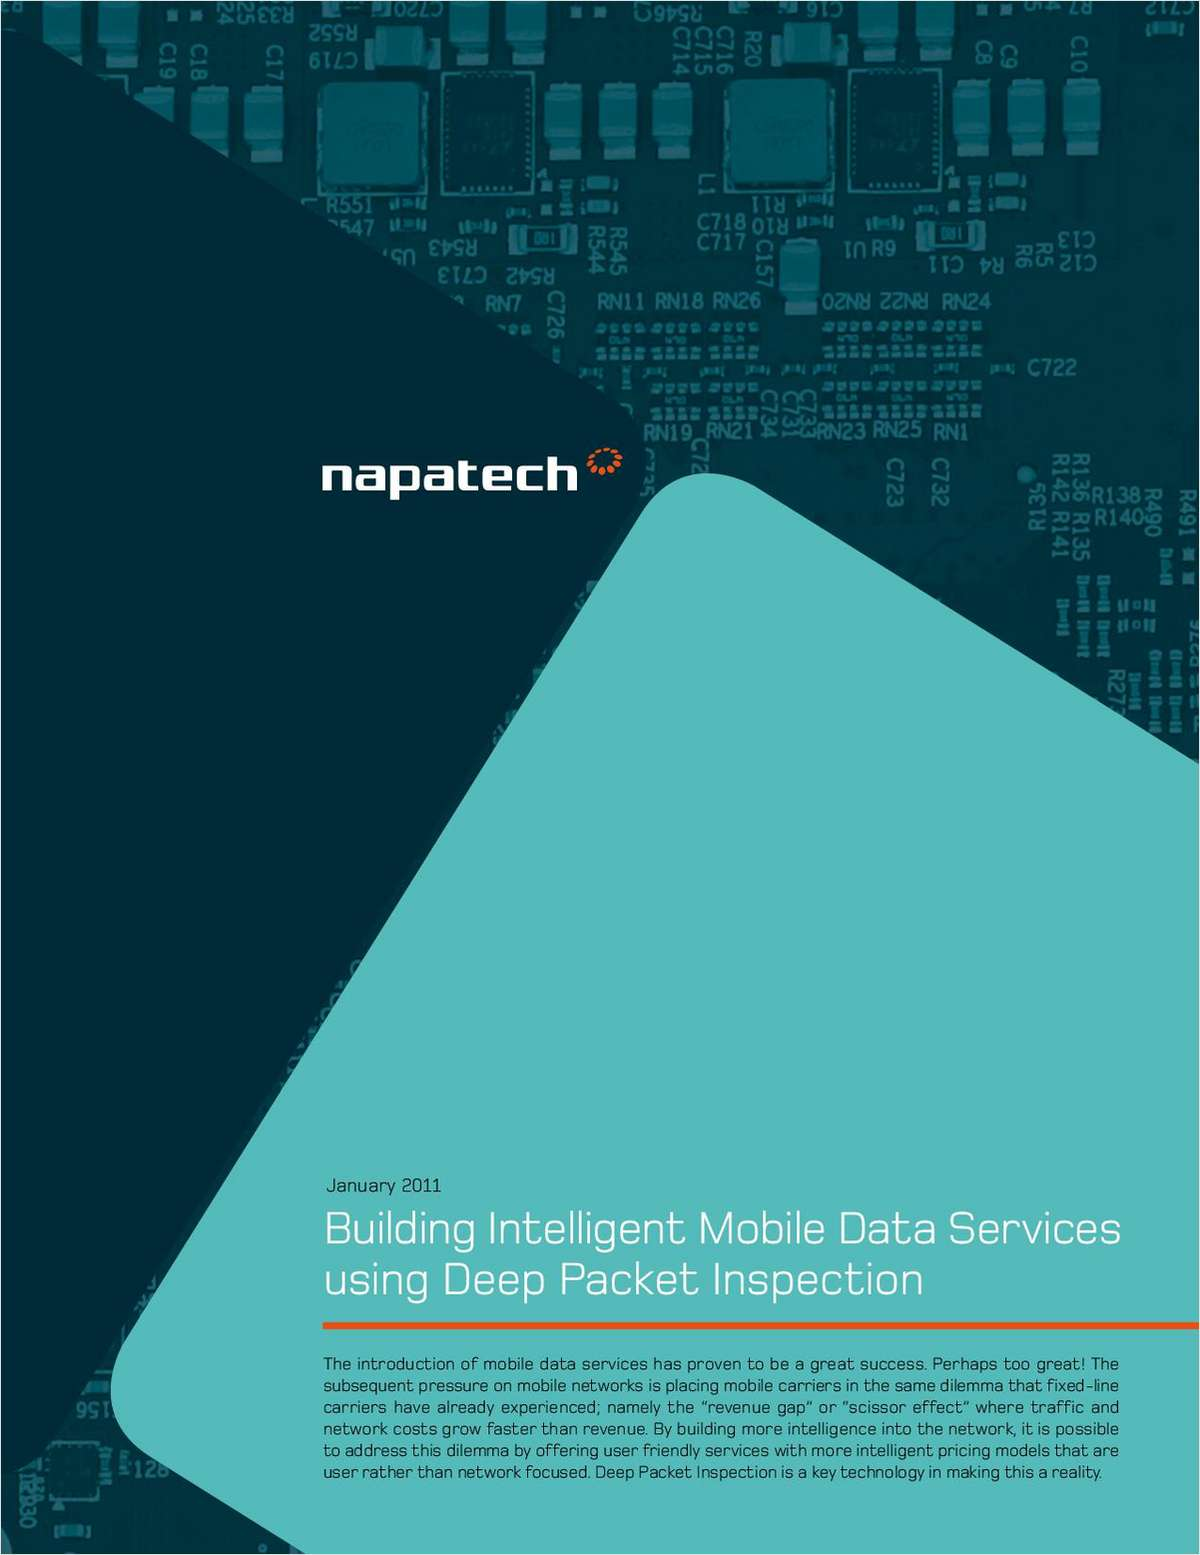 Building Intelligent Mobile Data Services Using Deep Packet Inspection for Telecom Equipment Vendors